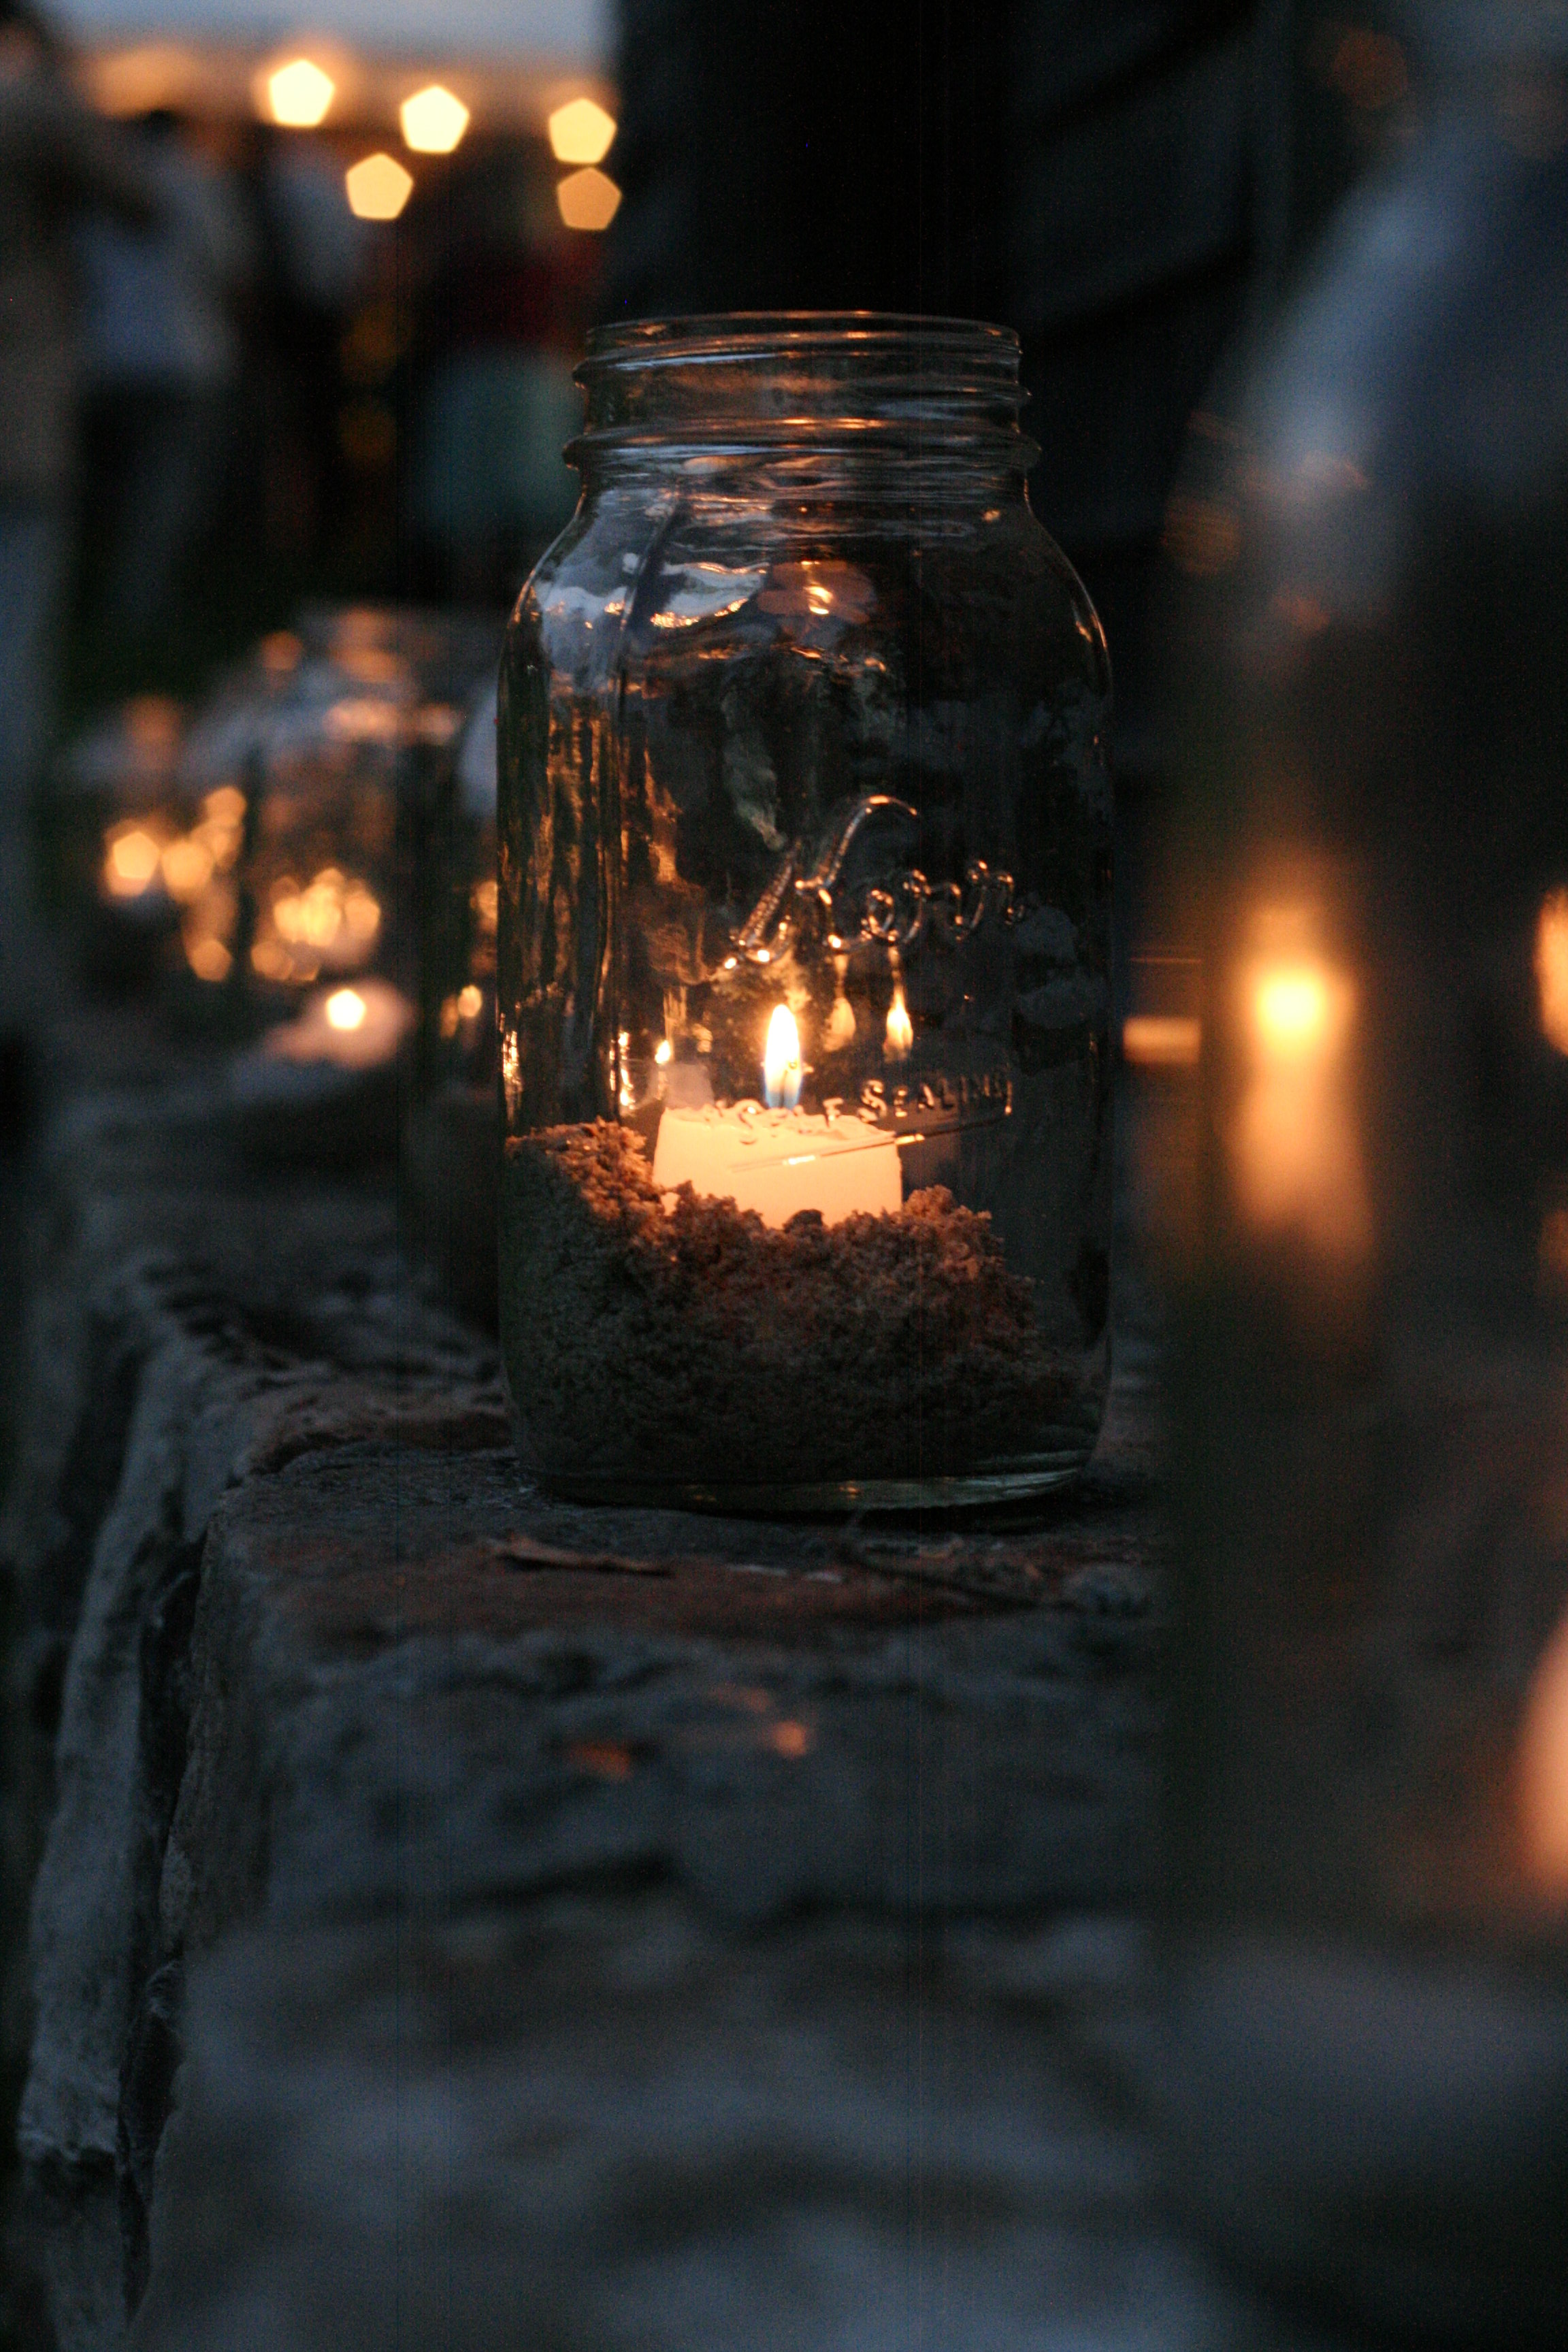 Kerr Mason Jar with candle for prayer